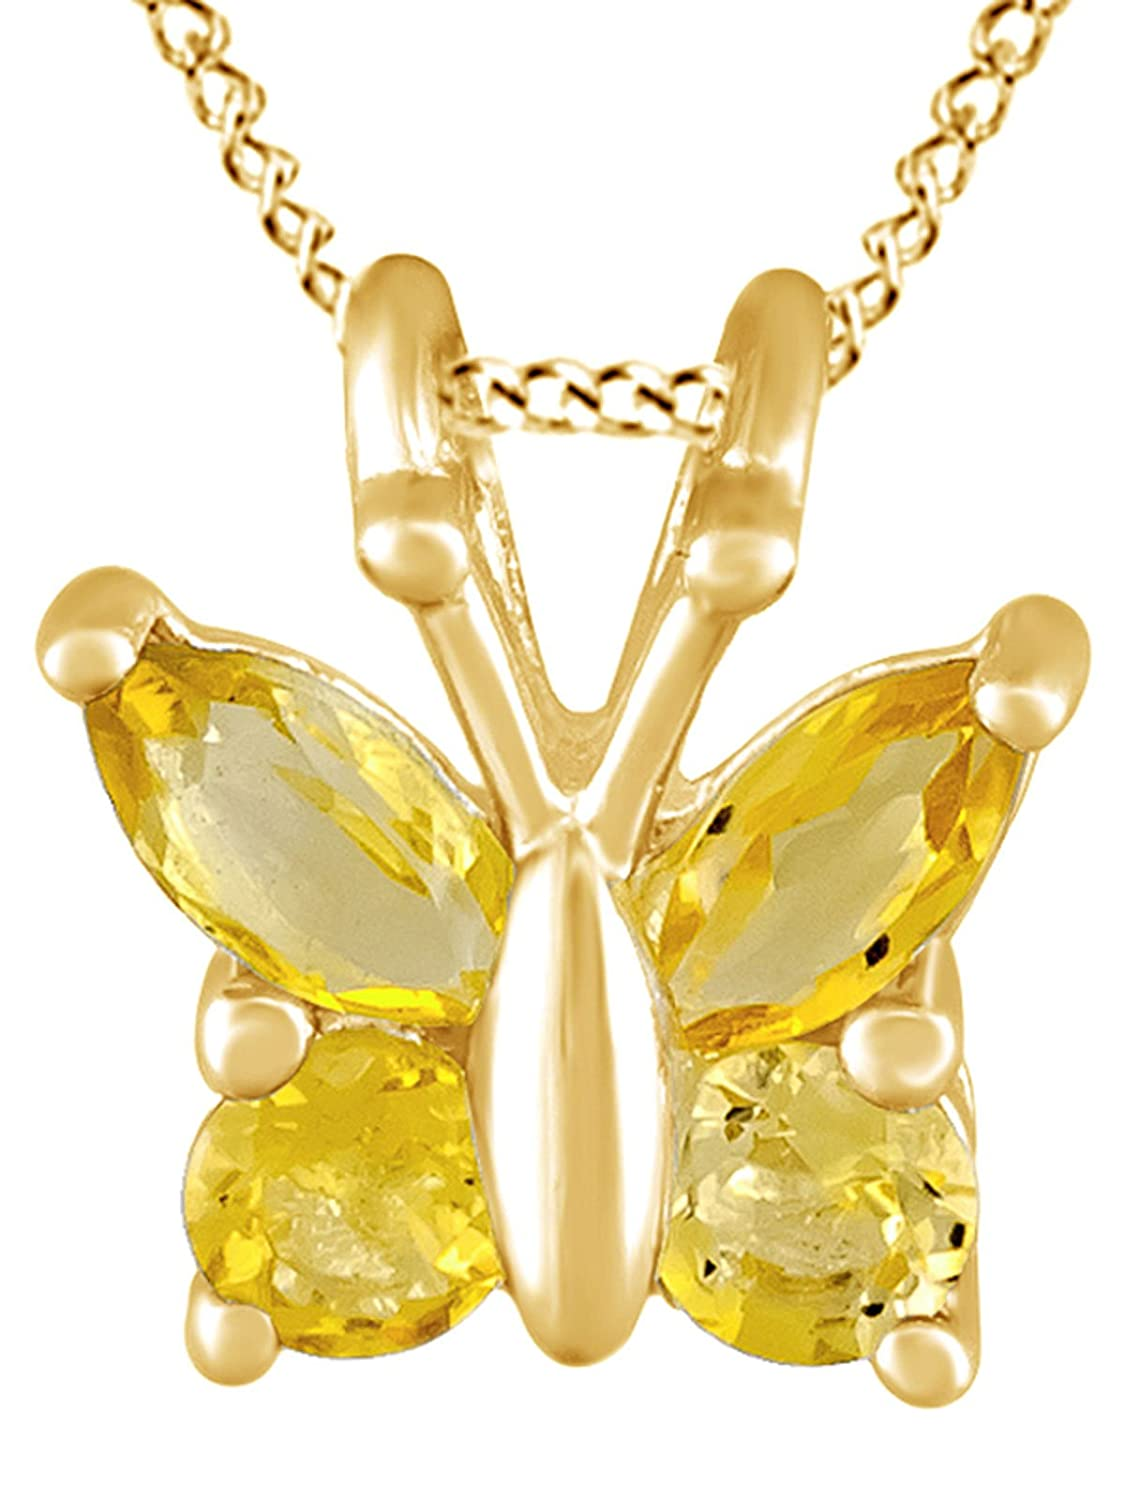 AFFY Simulated Yellow Citrine Butterfly Pendant Necklace in 14k Gold Over Sterling Silver 0.35 Cttw